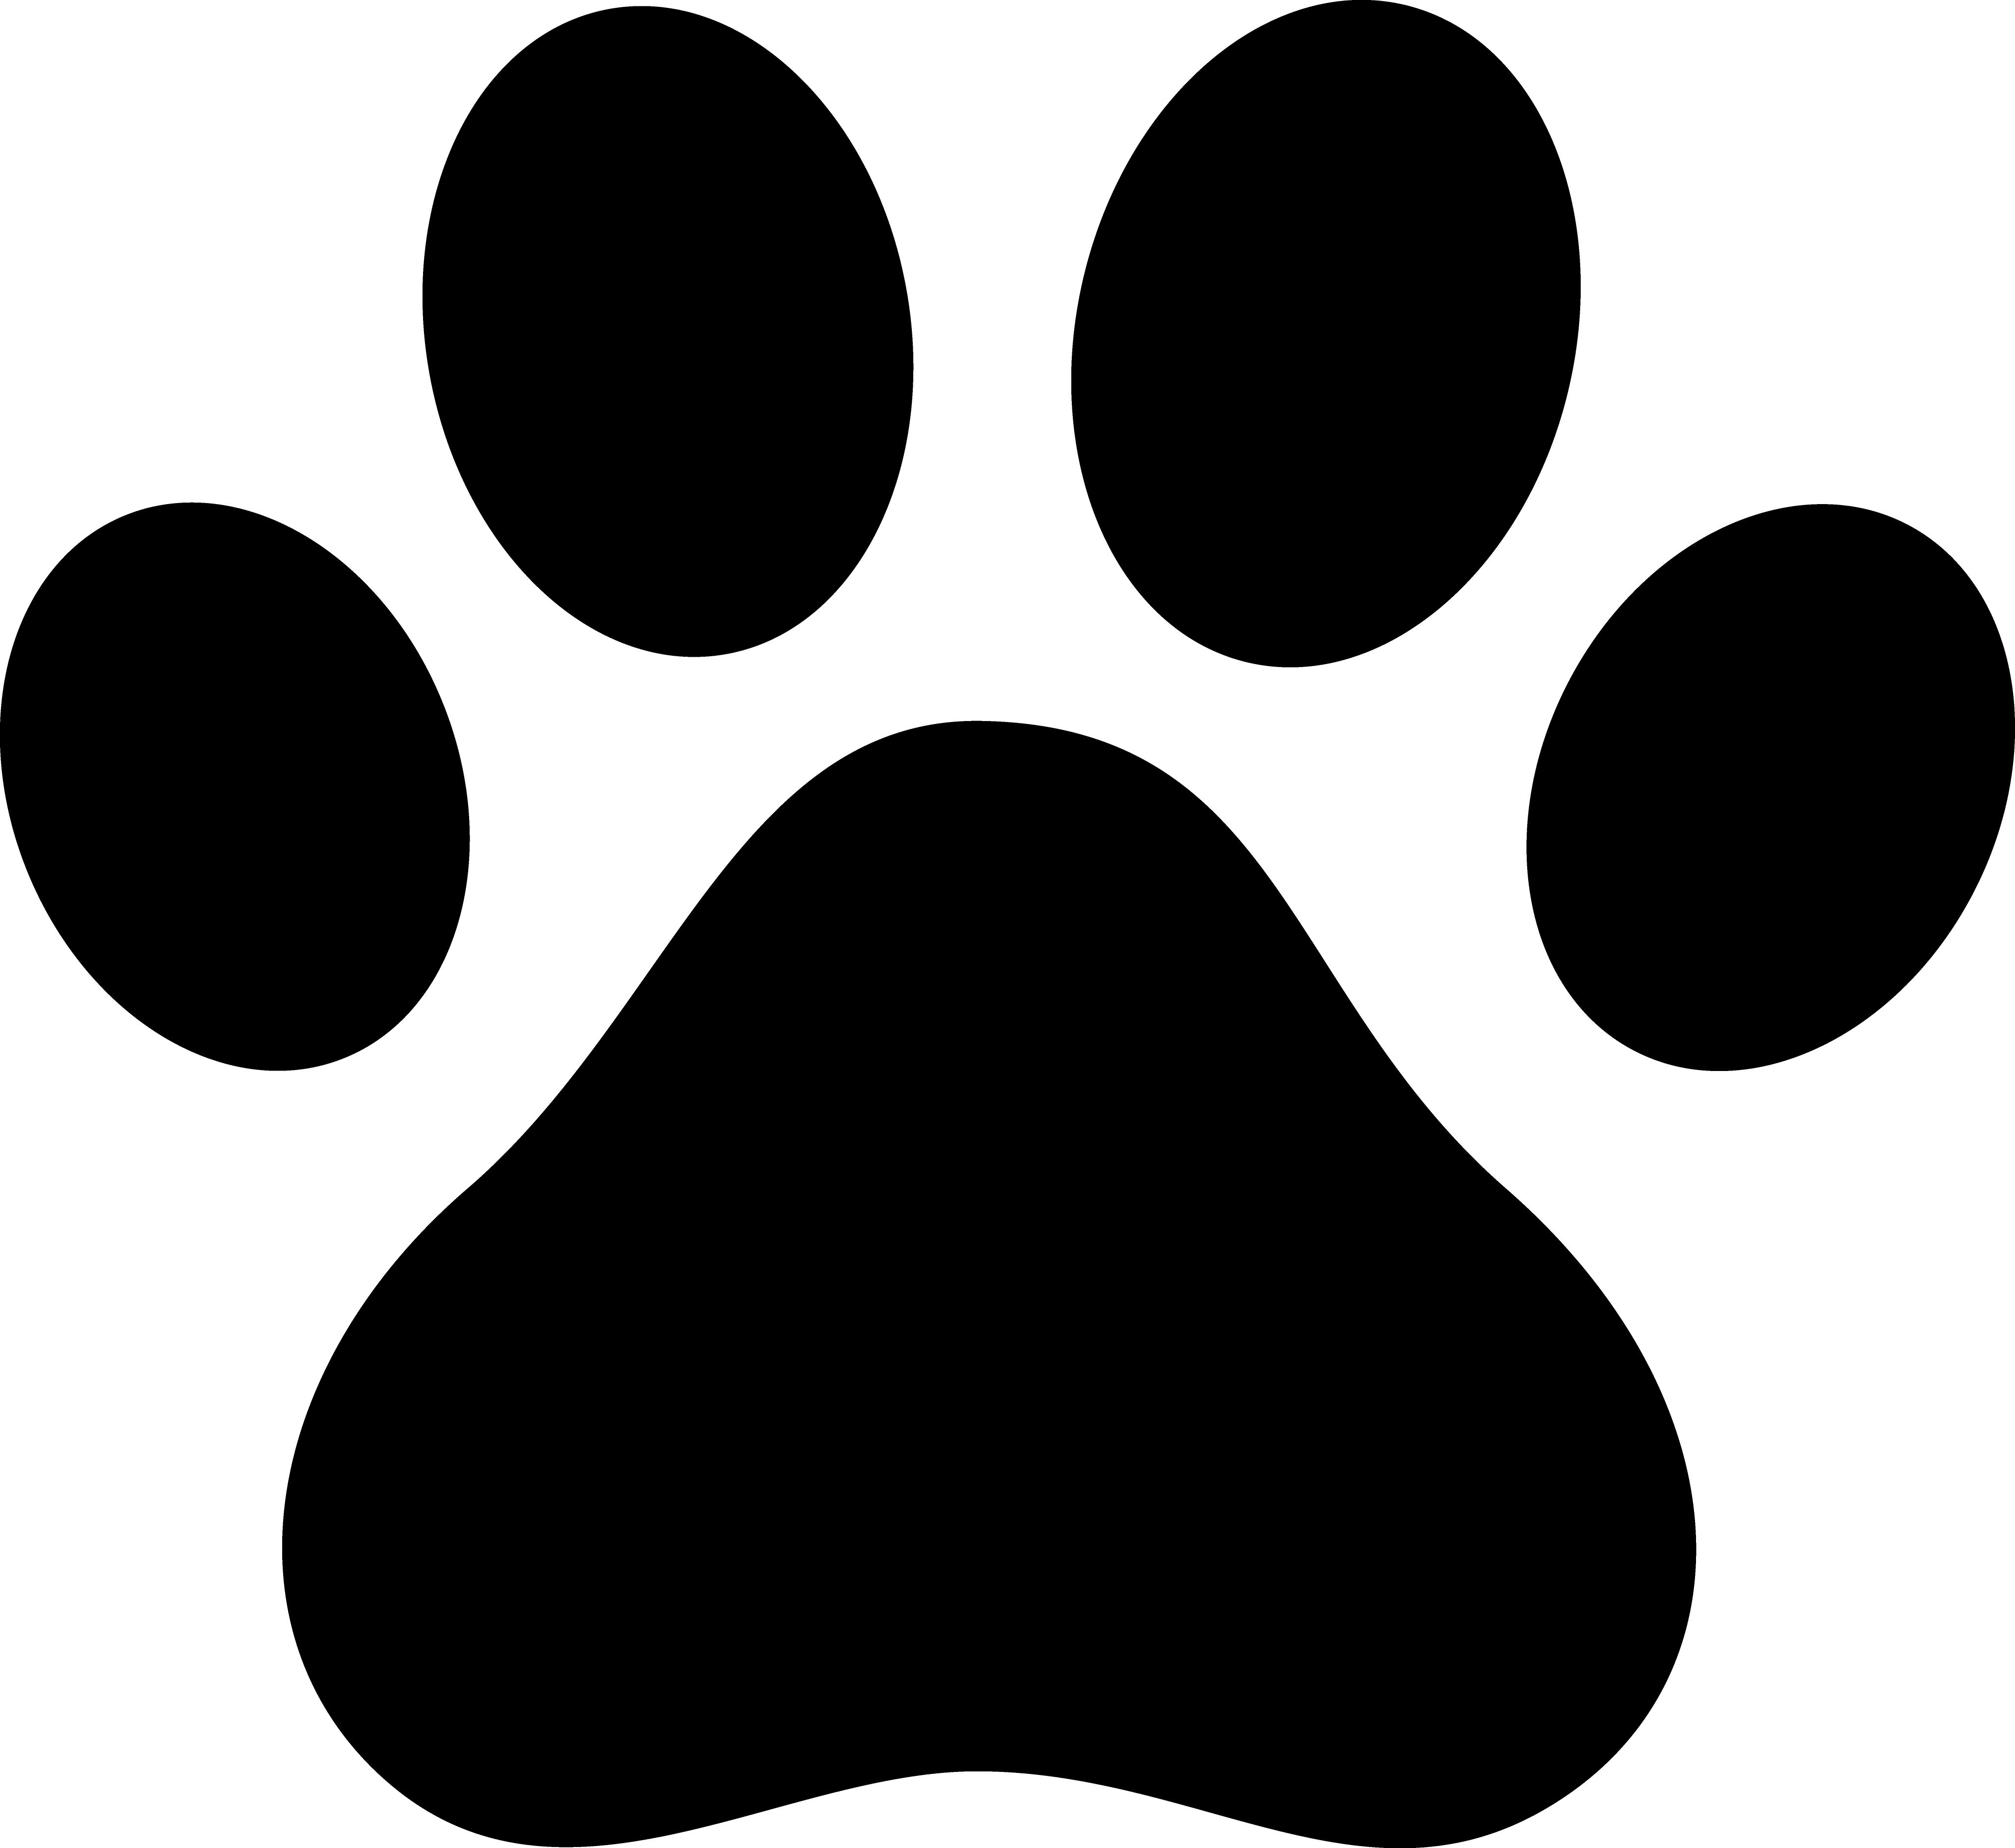 dog paw reference tatoo pinterest dog paws rh pinterest com free dog paw print clip art images Printable Dog Paw Prints